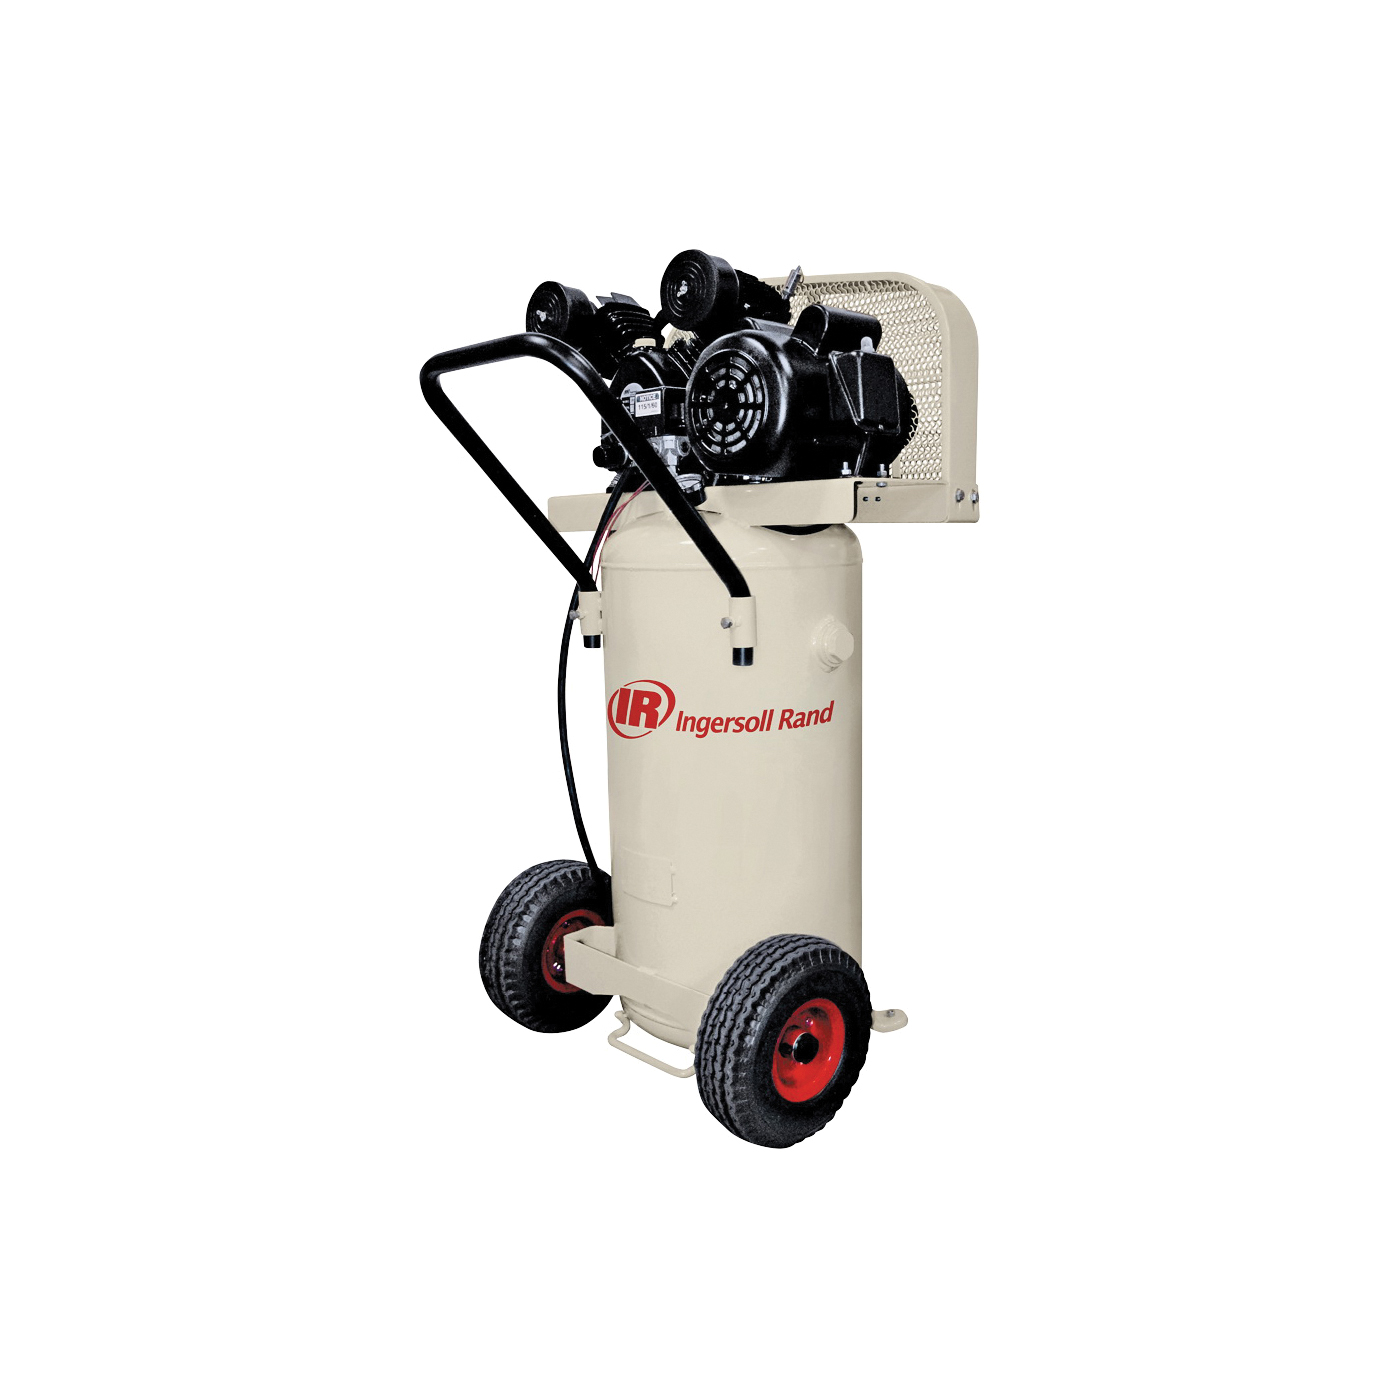 Picture of Ingersoll Rand P1.5IU-A9 Small Portable Reciprocating Air Compressor, 20 gal Tank, 2 hp, 115 V, 135 psi Pressure